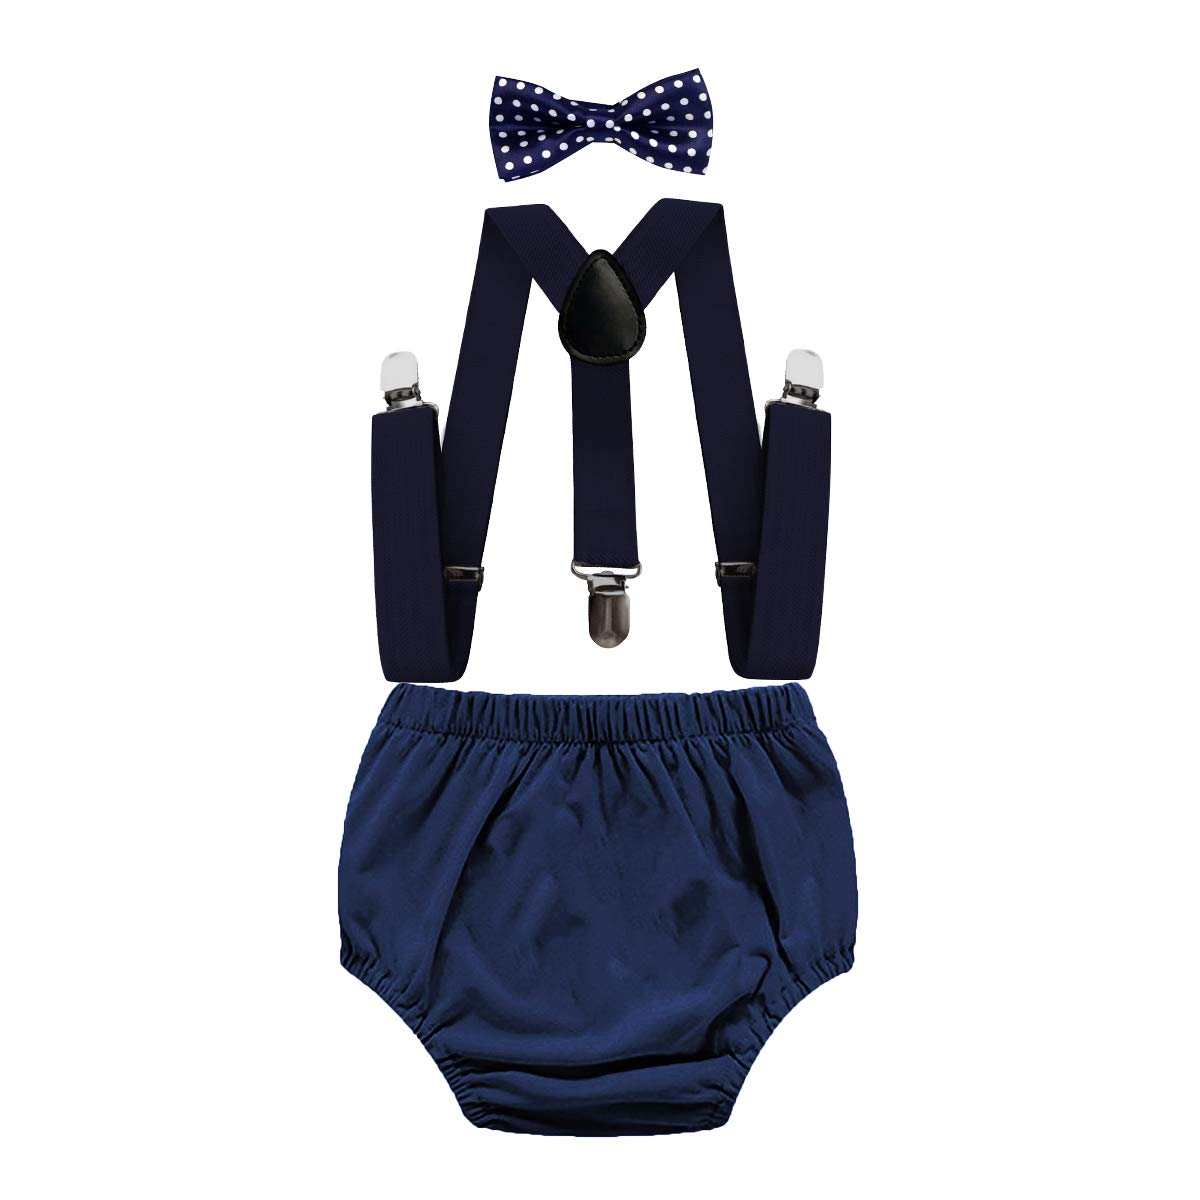 MYRISAM Infant Baby Boys 1st 2nd Birthday Cake Smash Outfits Bloomers Suspender Bow Tie for Photo Props Baby Shower Costume